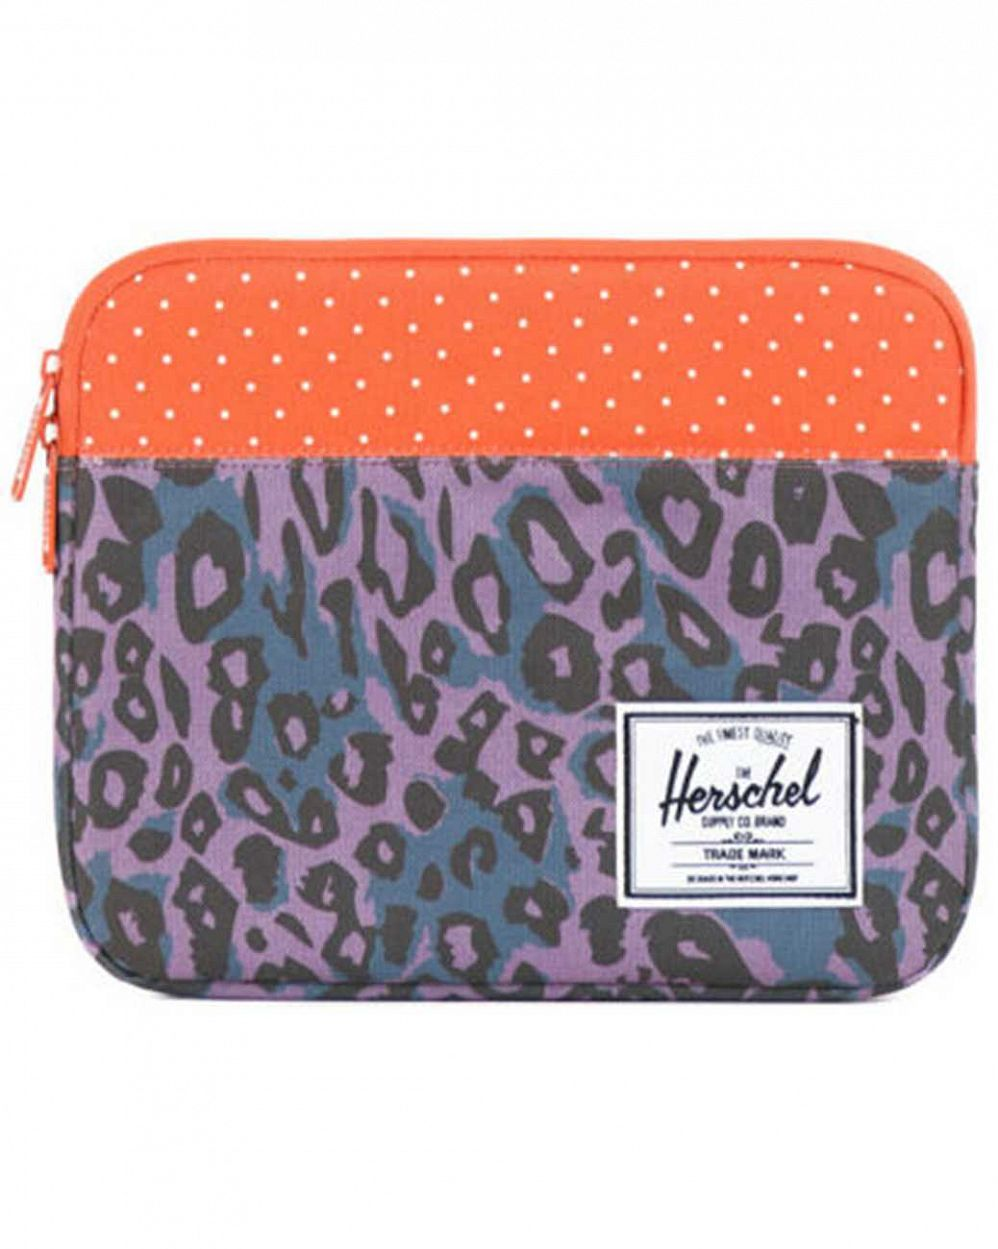 Чехол Herschel Anchor Sleeve для iPad Purple Leopard Orange Polka Dot цена в Москве